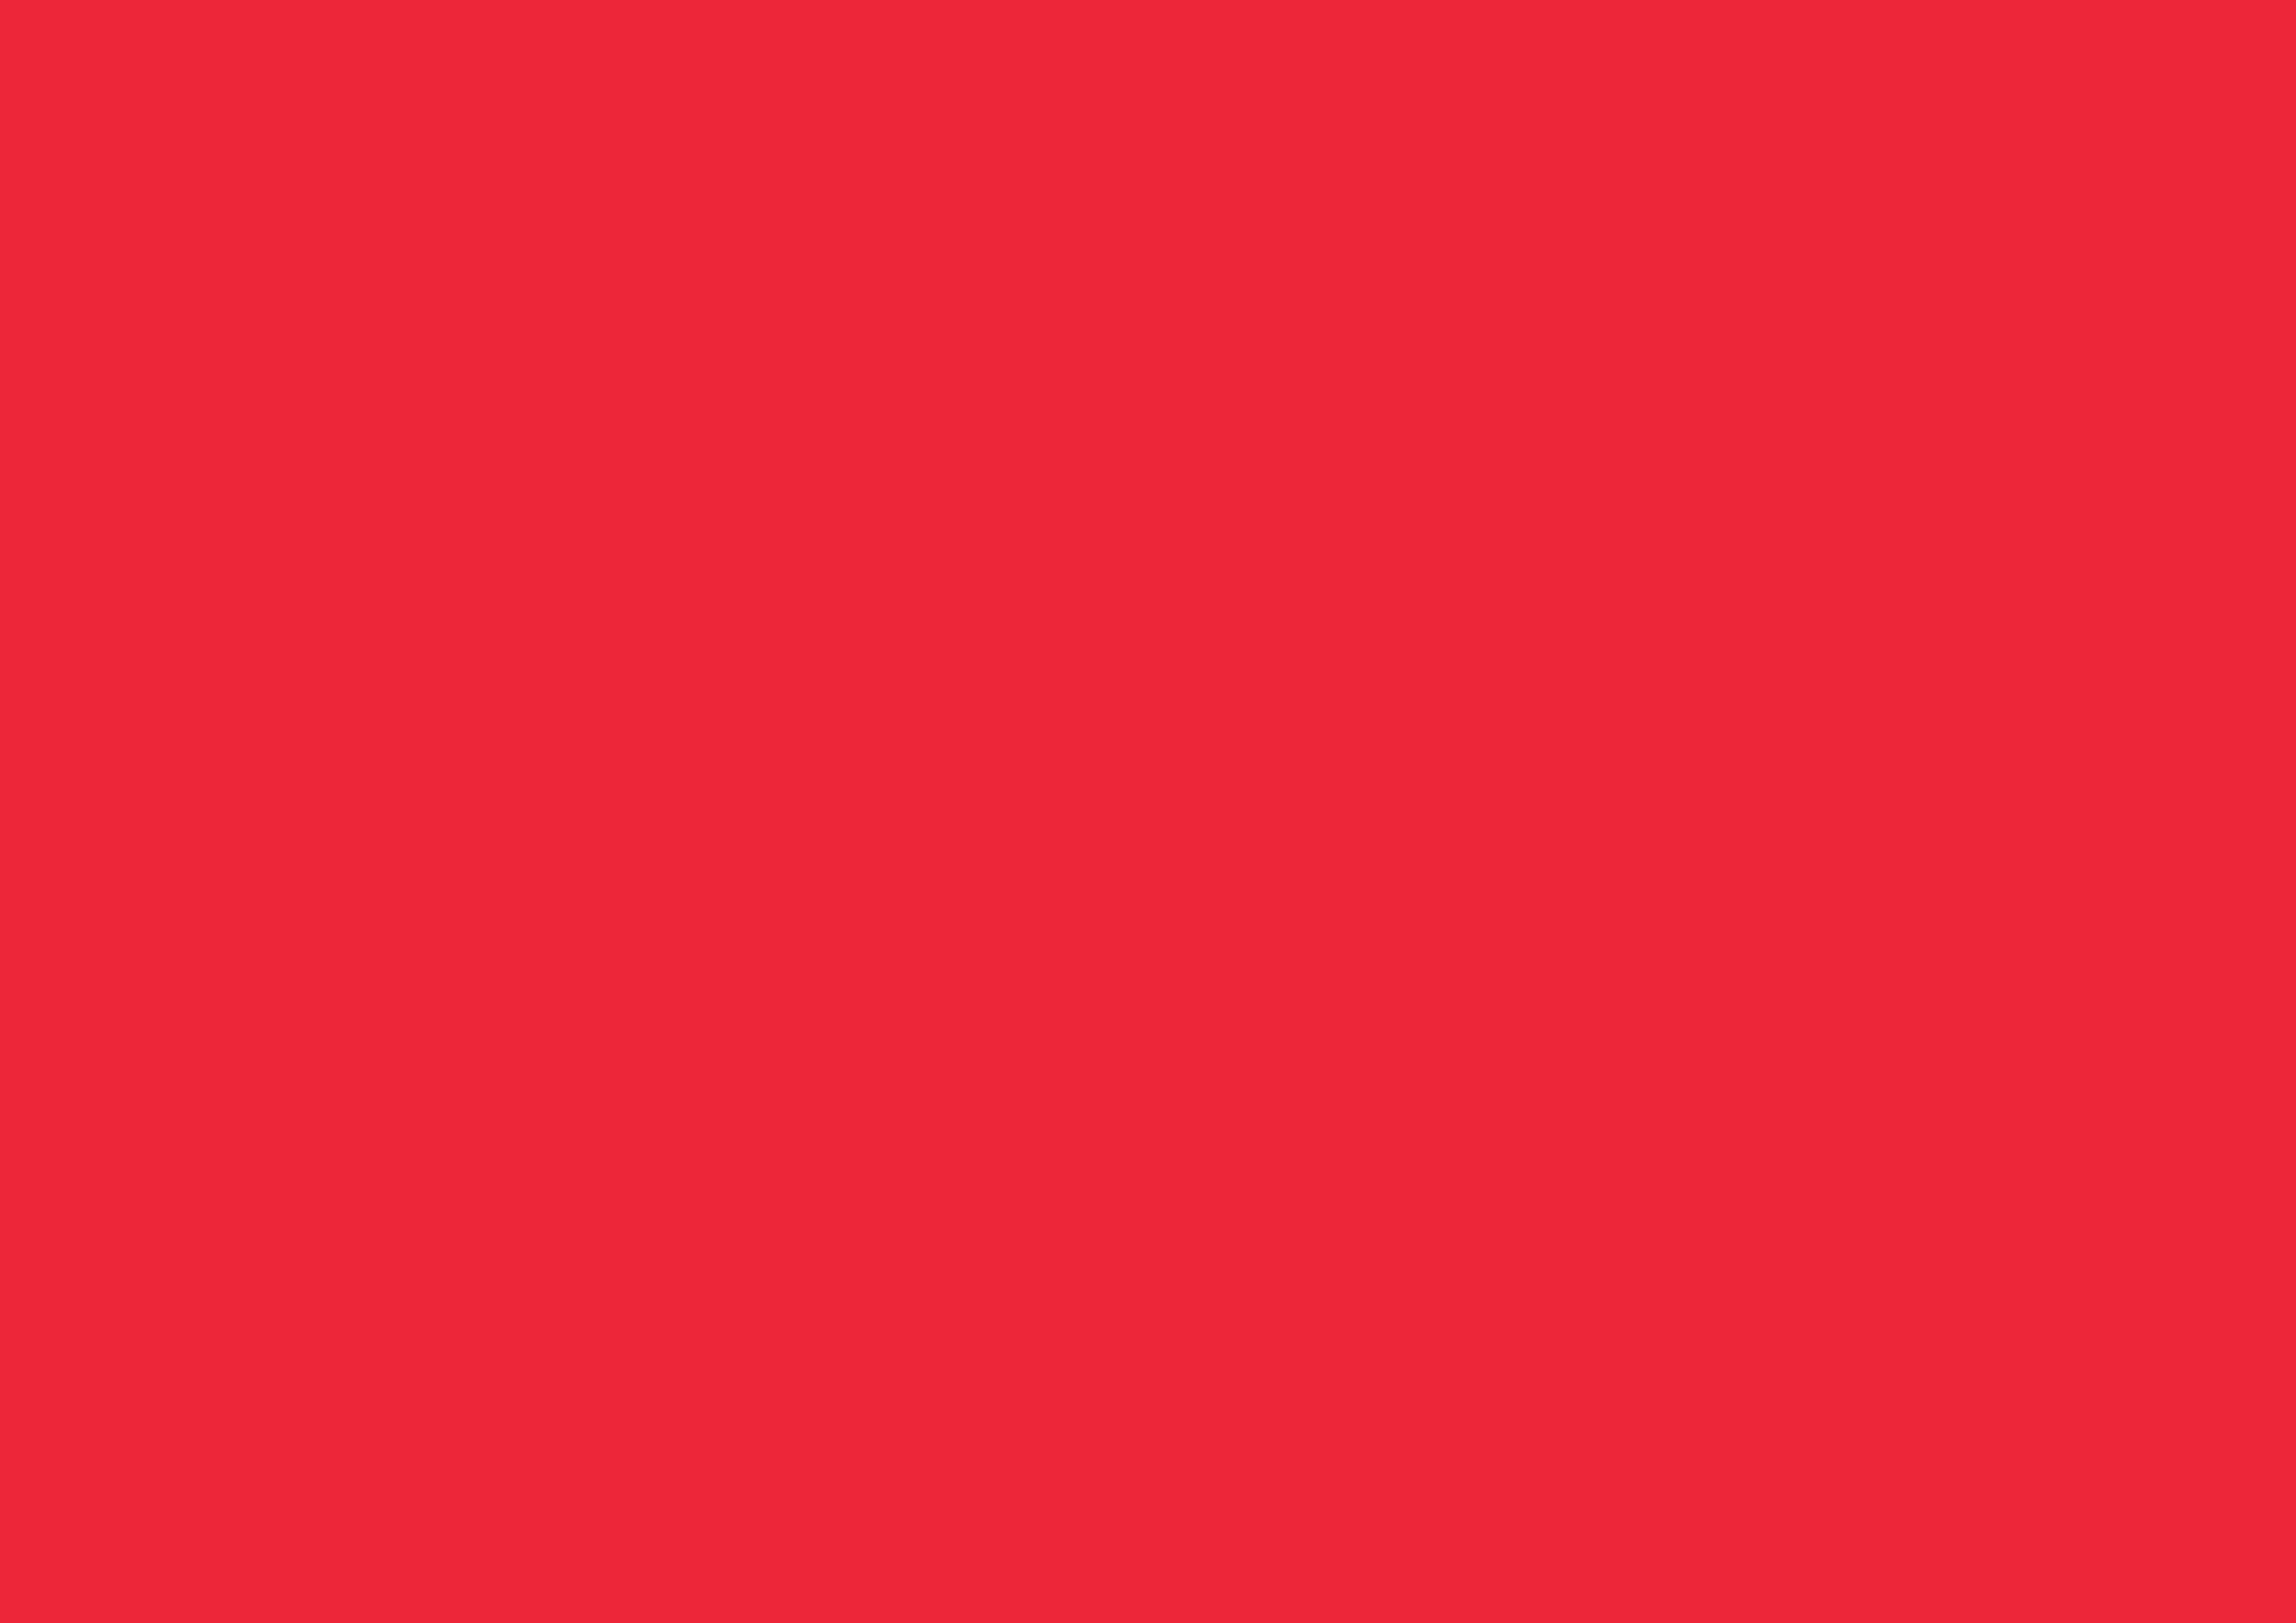 3508x2480 Red Pantone Solid Color Background